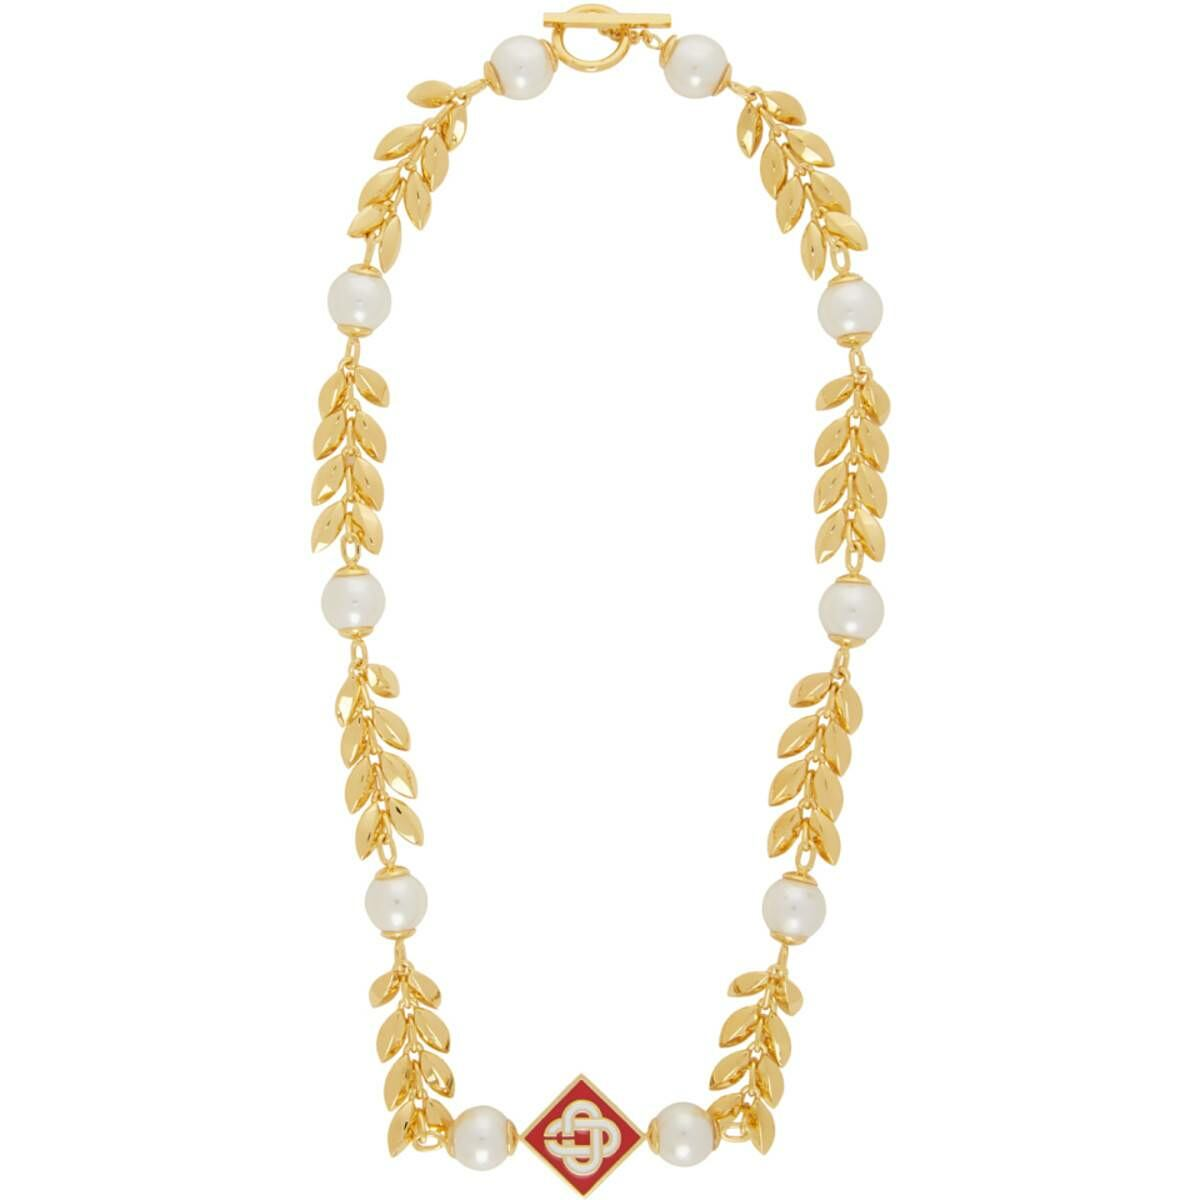 Casablanca Gold Plated O Thongthai Edition Pearl Necklace Ssense USA MEN Men ACCESSORIES Mens JEWELRY